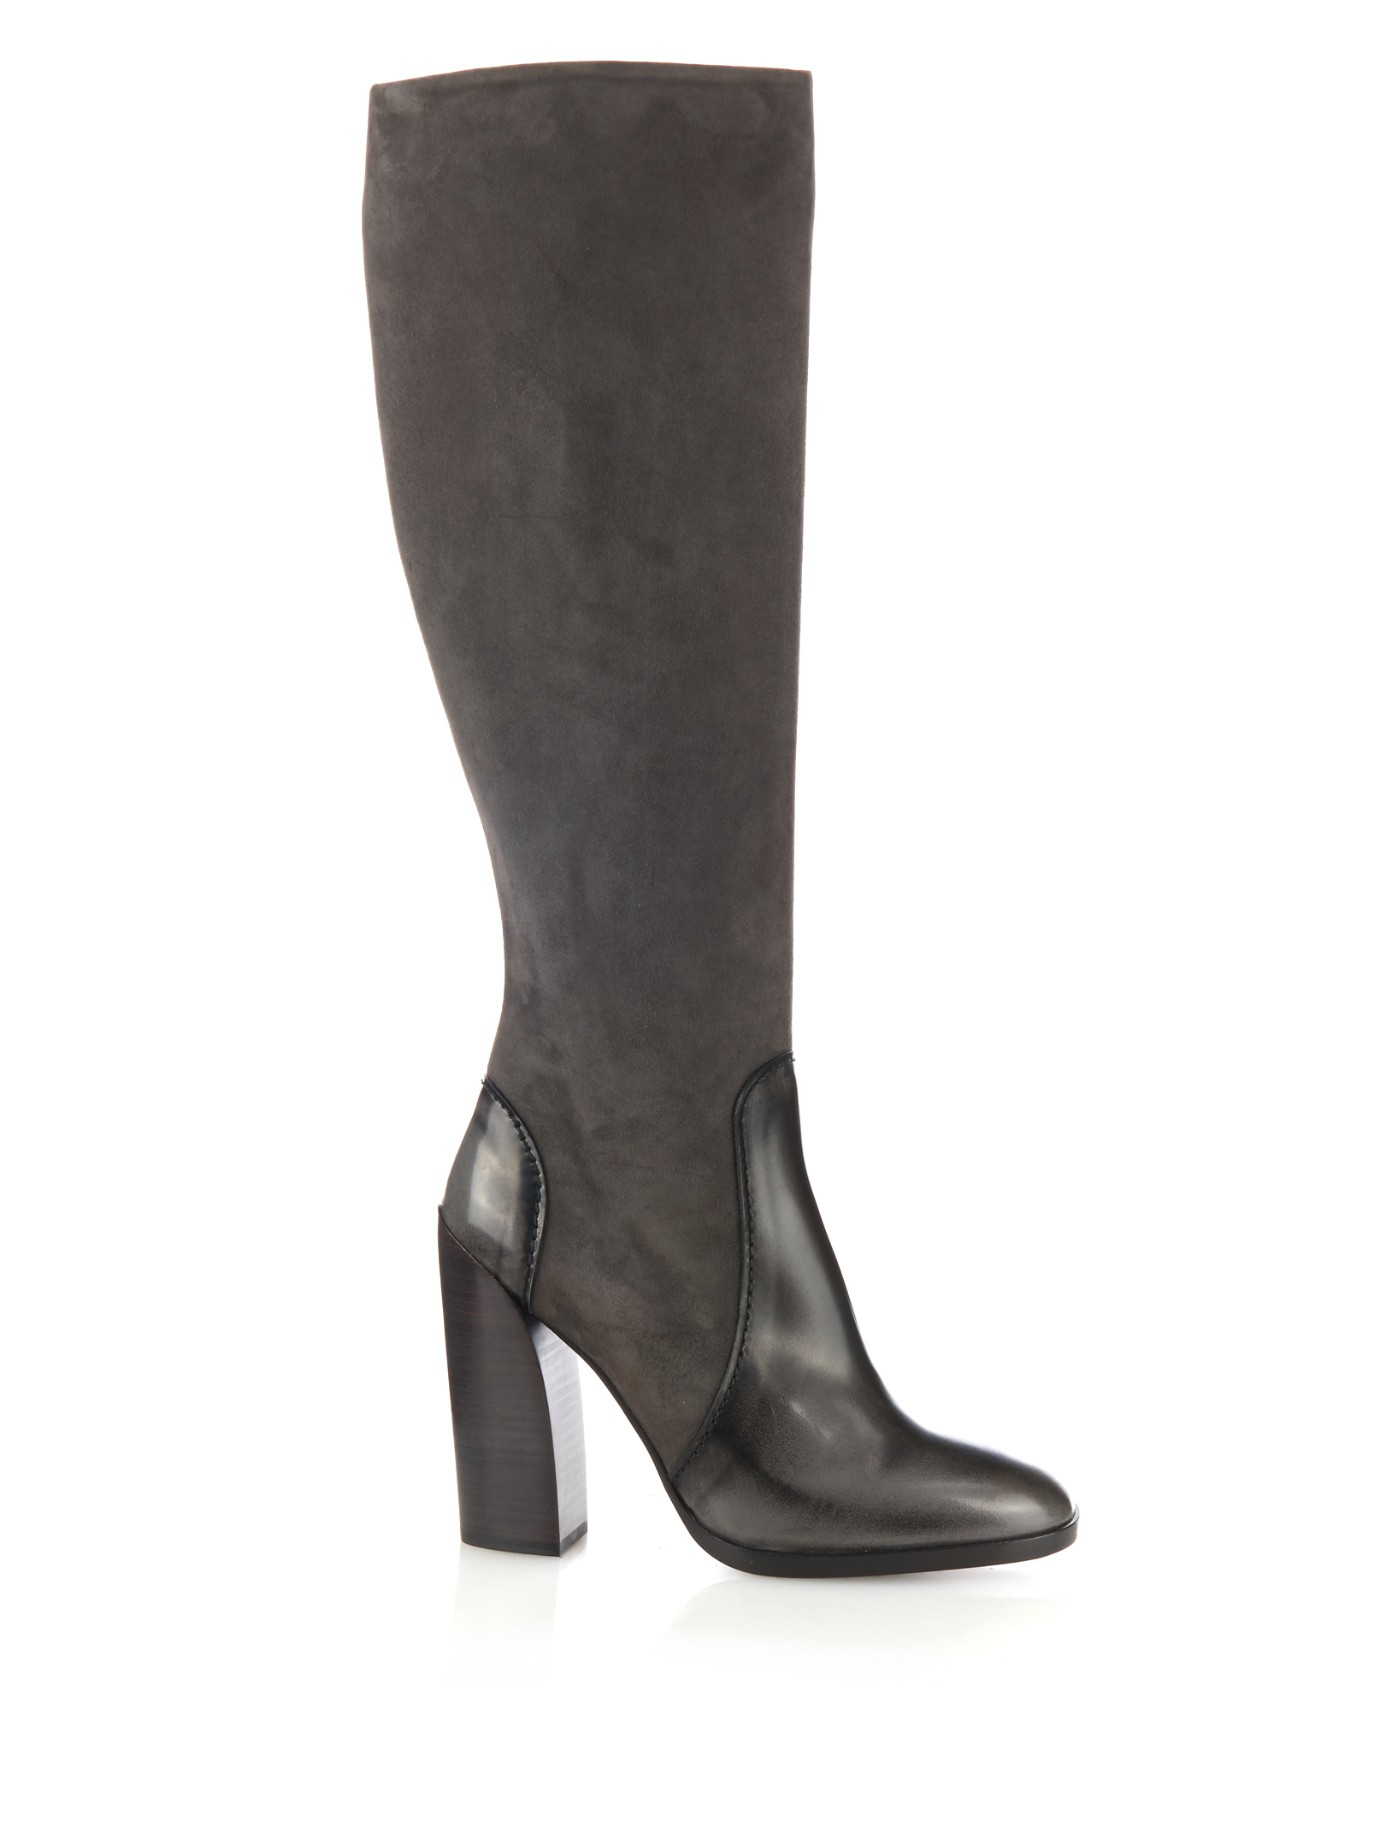 Lyst Jil Sander Suede And Leather Knee High Boots In Gray